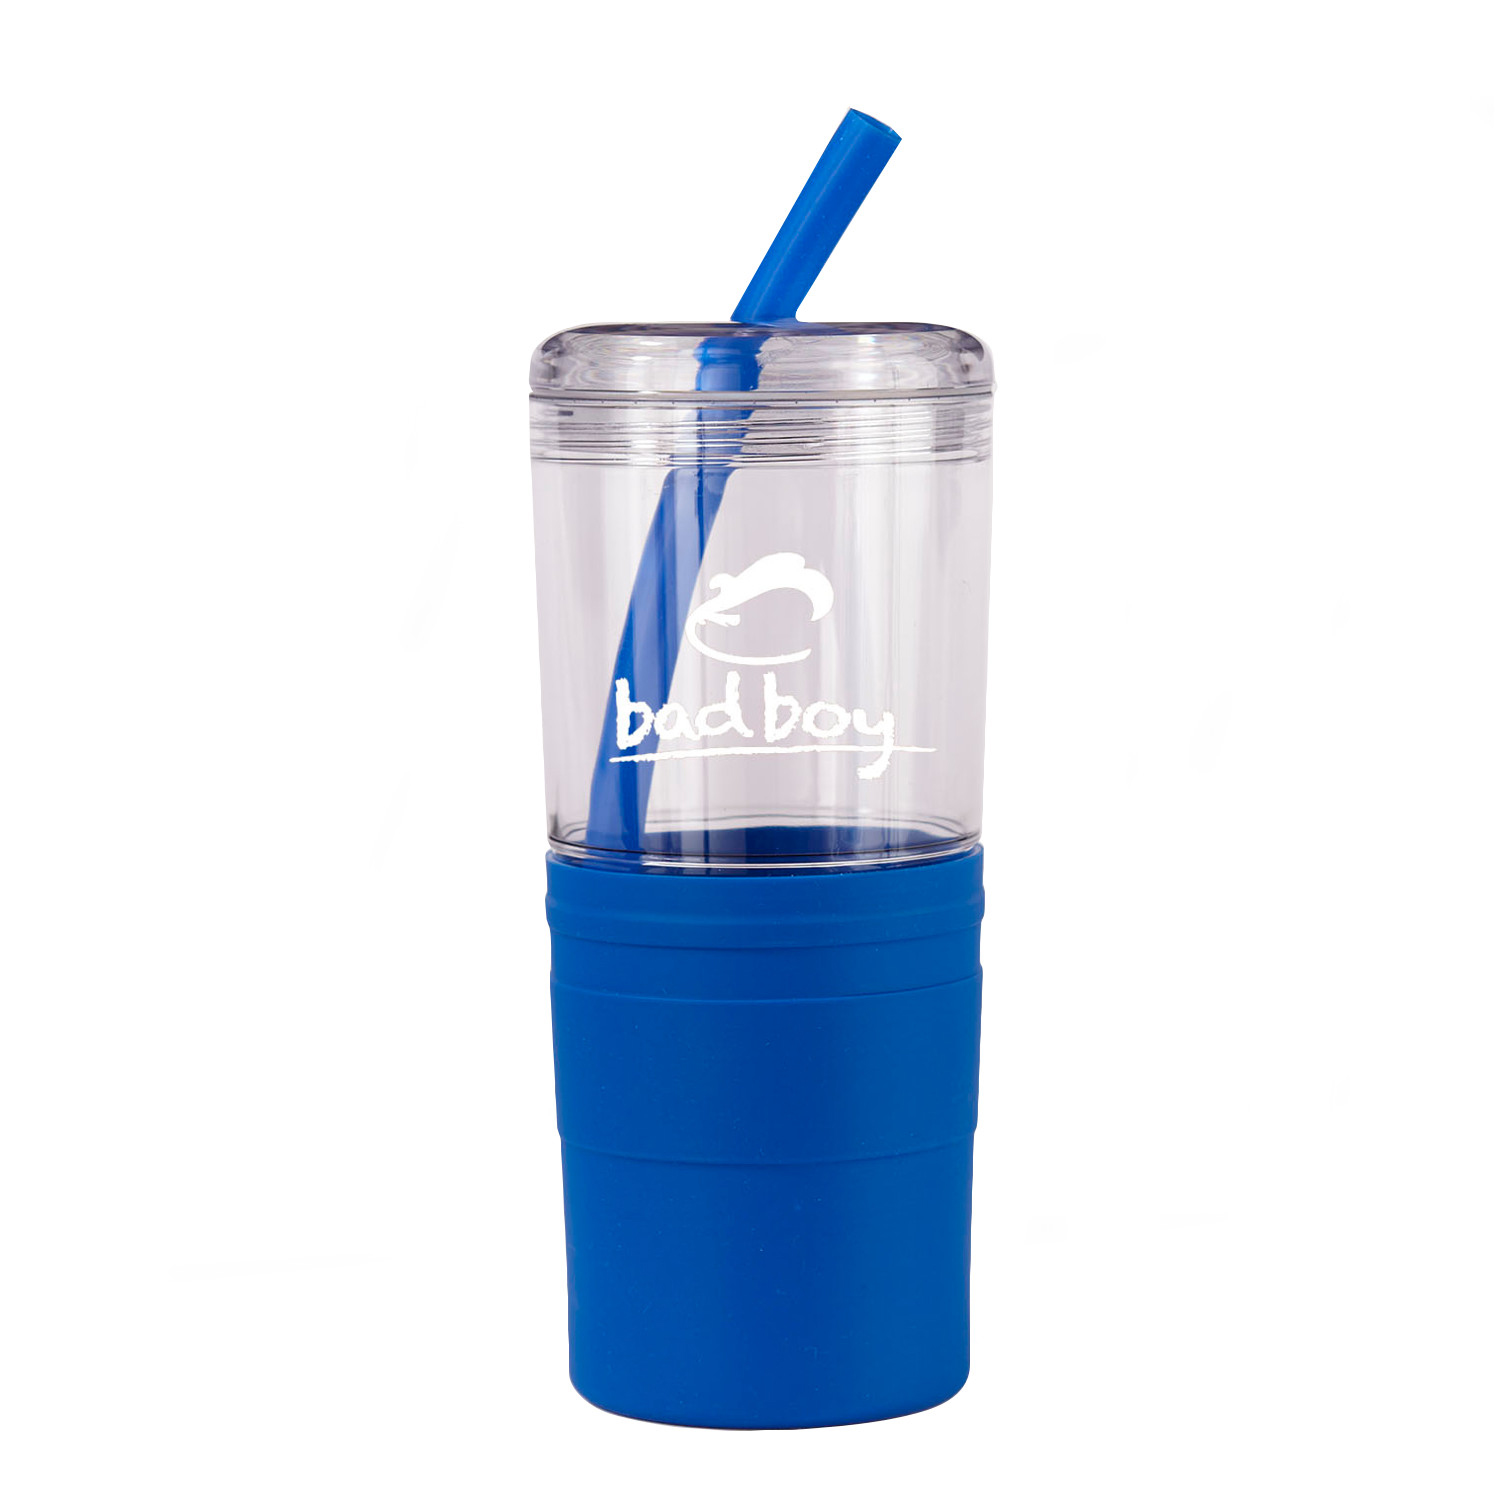 21 oz Chill Cup with Silicone Sleeve